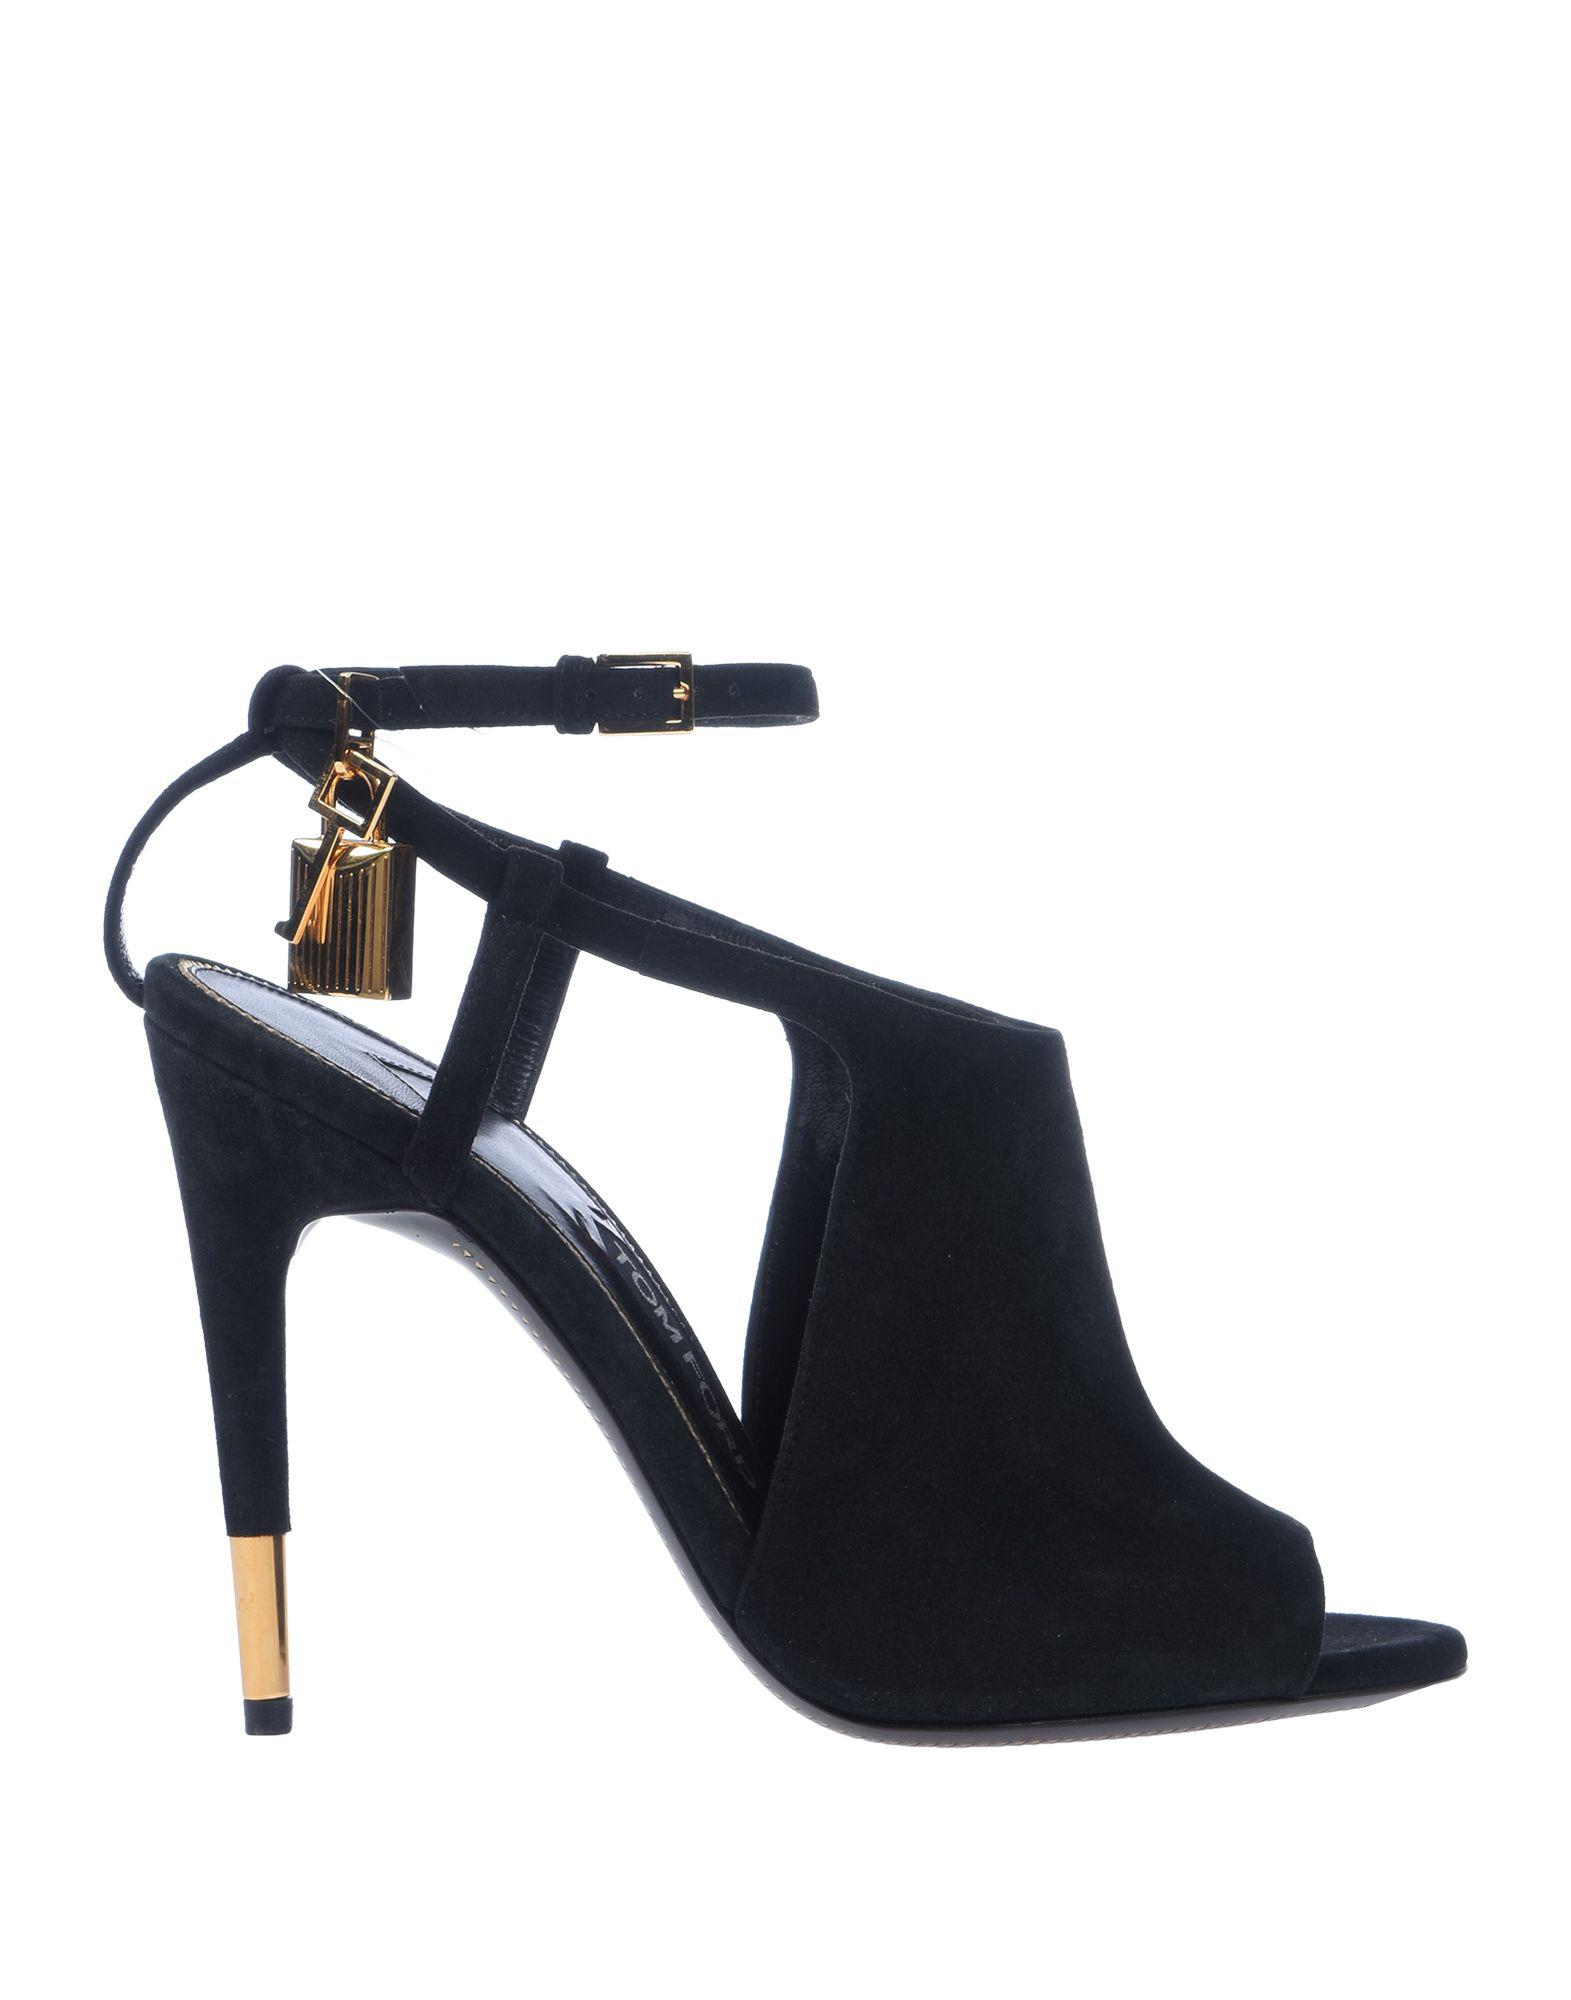 037f52f9129b Lyst - Tom Ford Sandals in Black